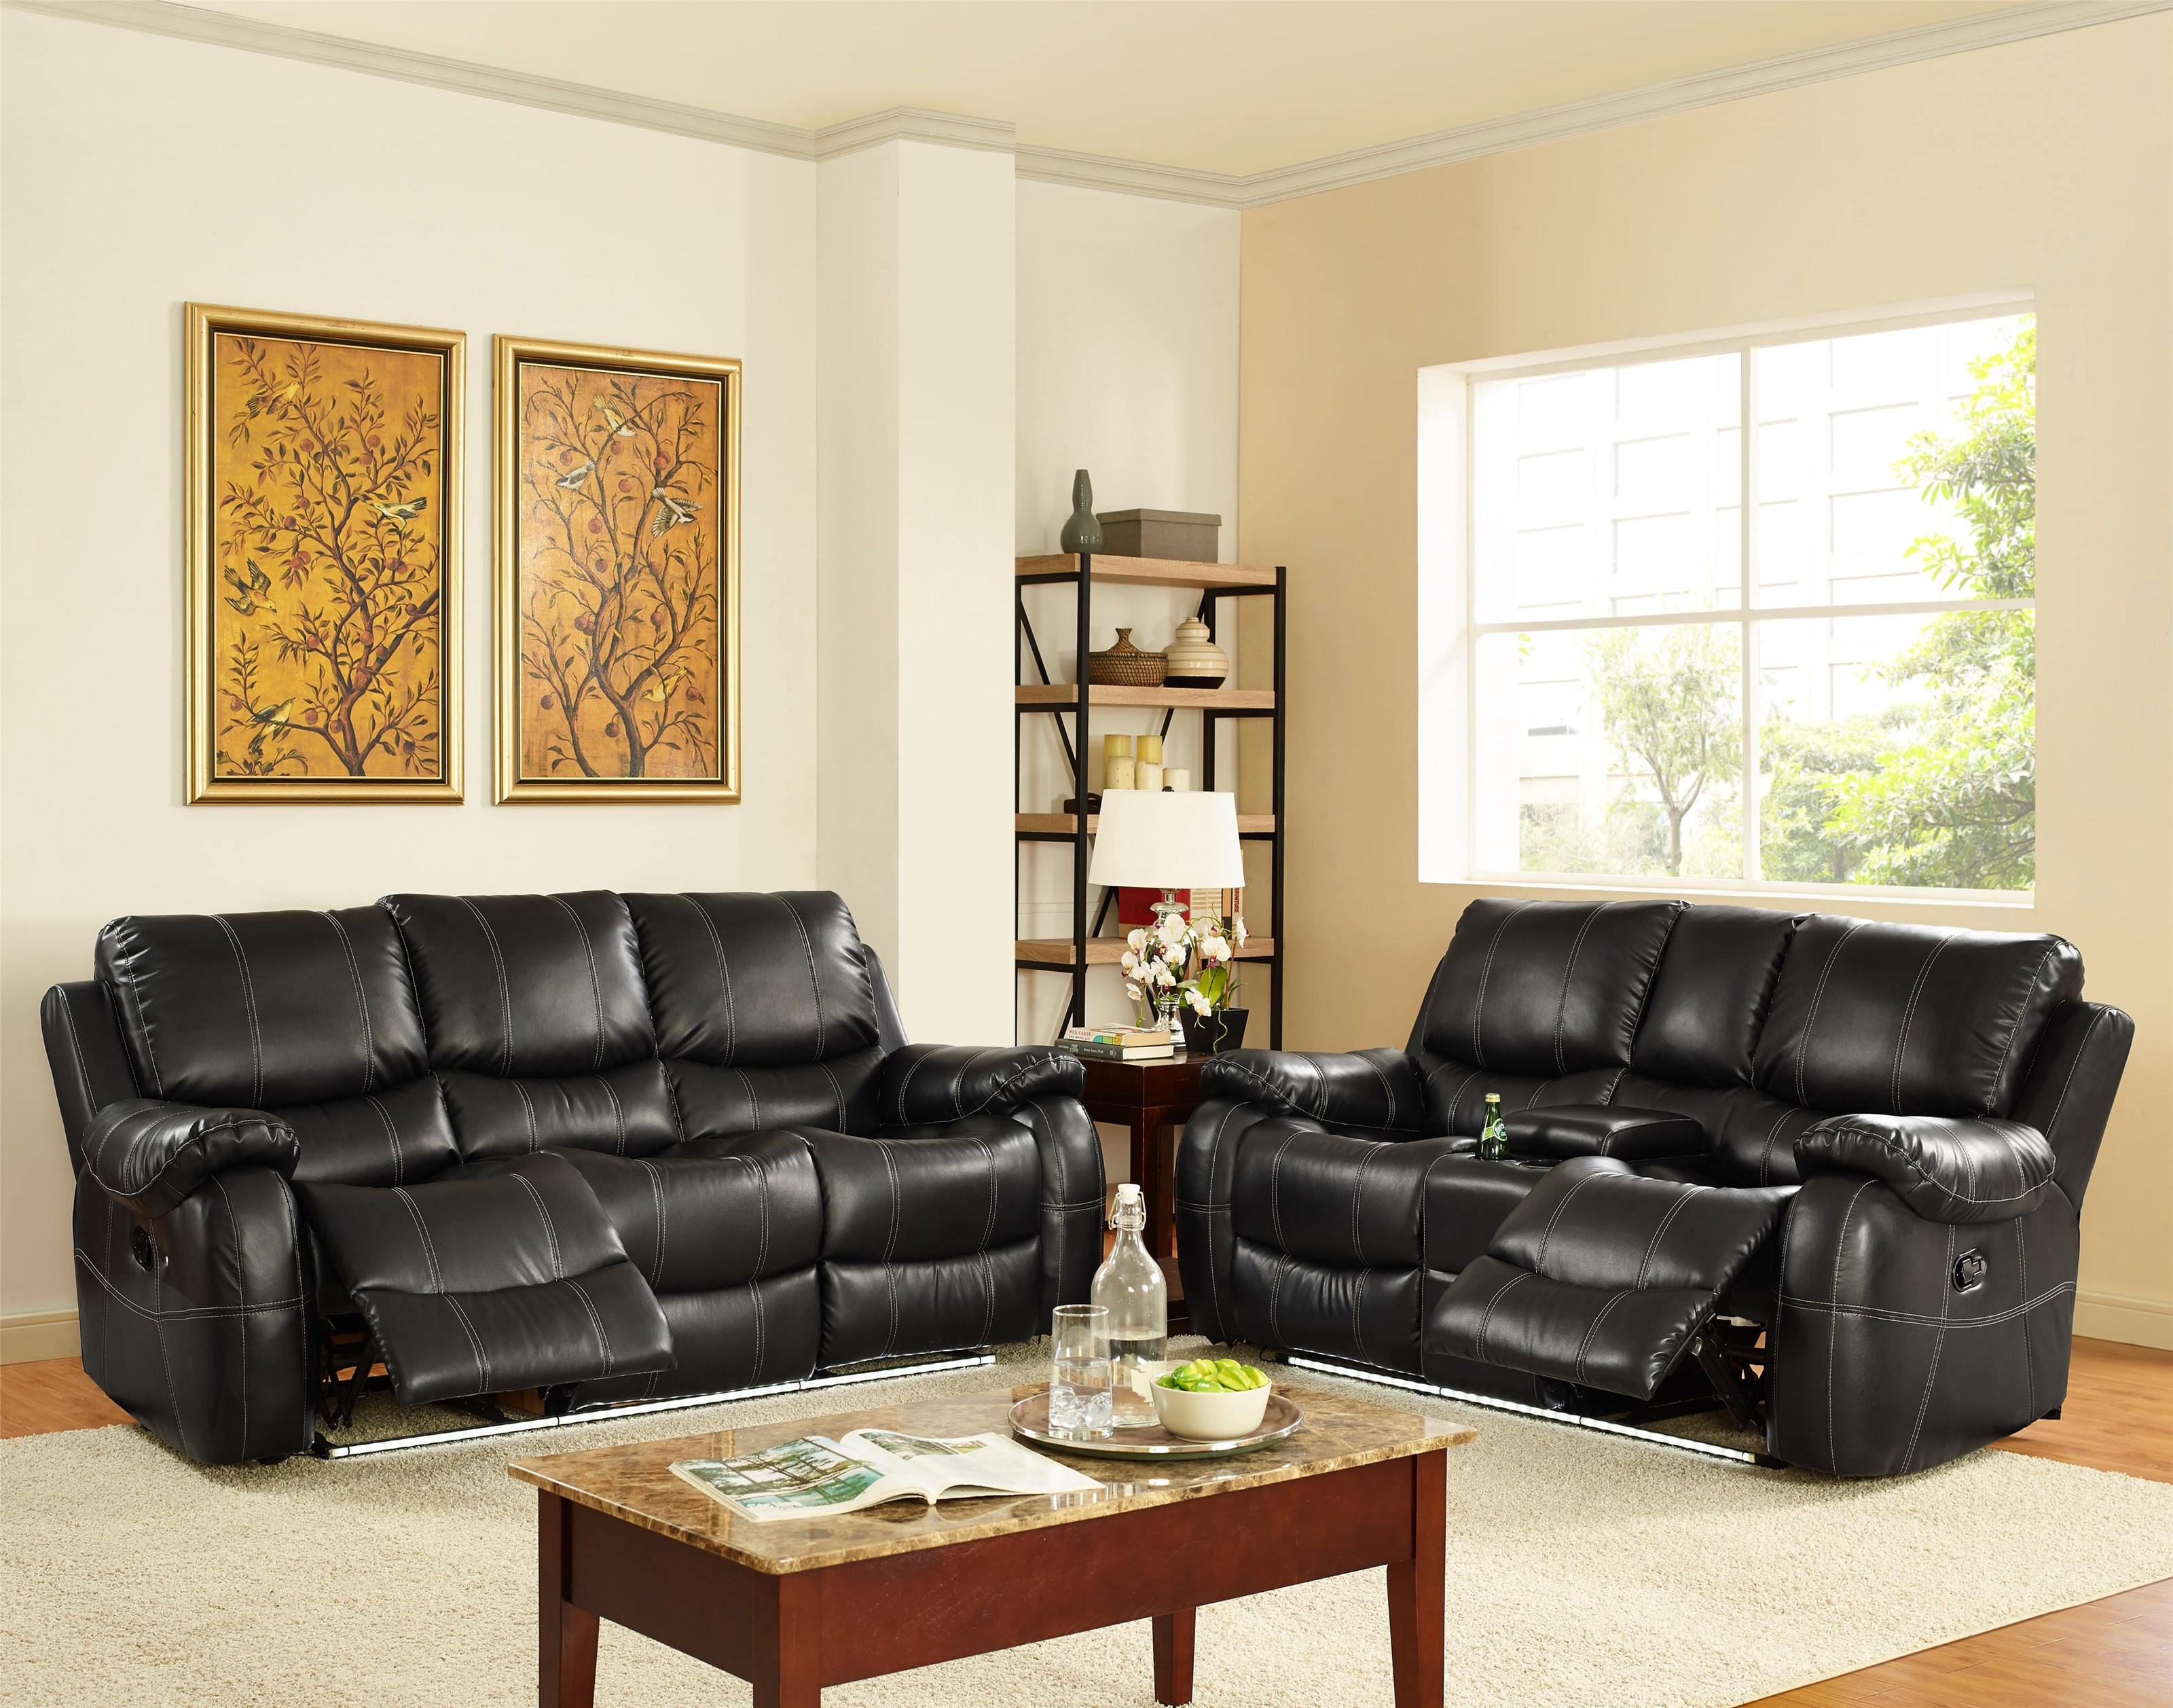 New Classic lynx Double Reclining Sofa with Lights - Item Number: lynx